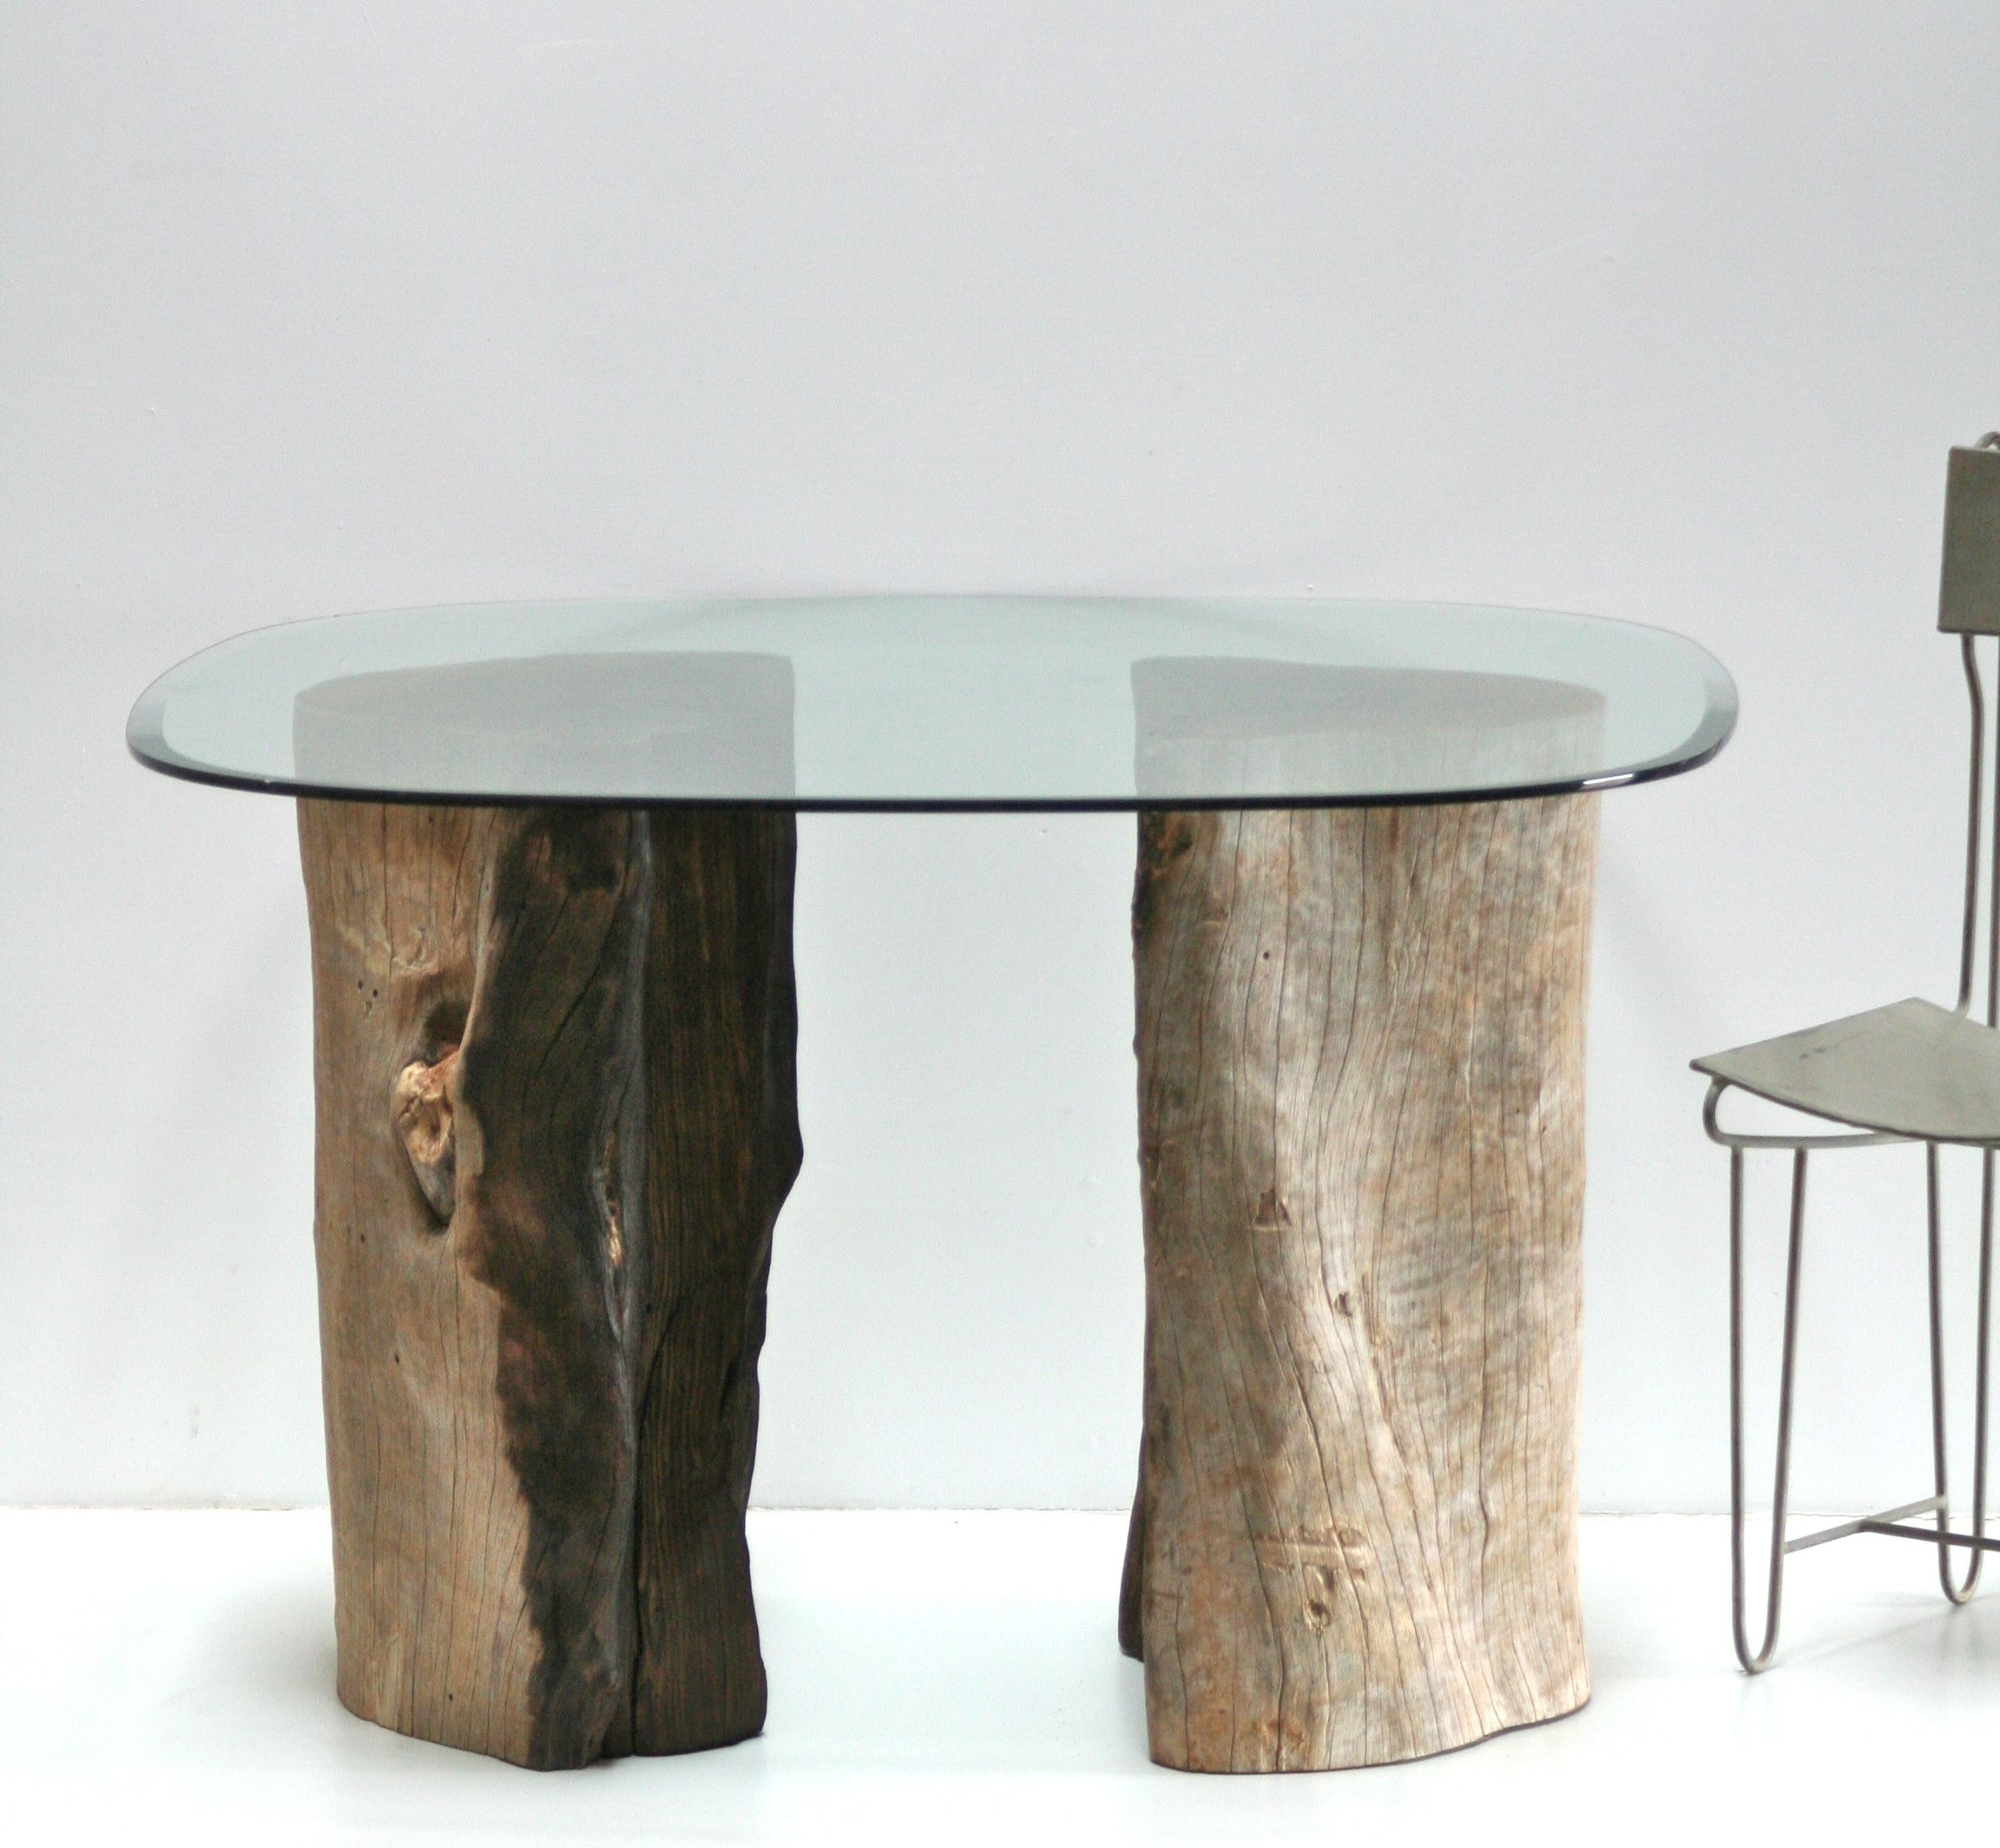 Dining table organic tree stump trunk table bases rescued for Tree trunk dining table